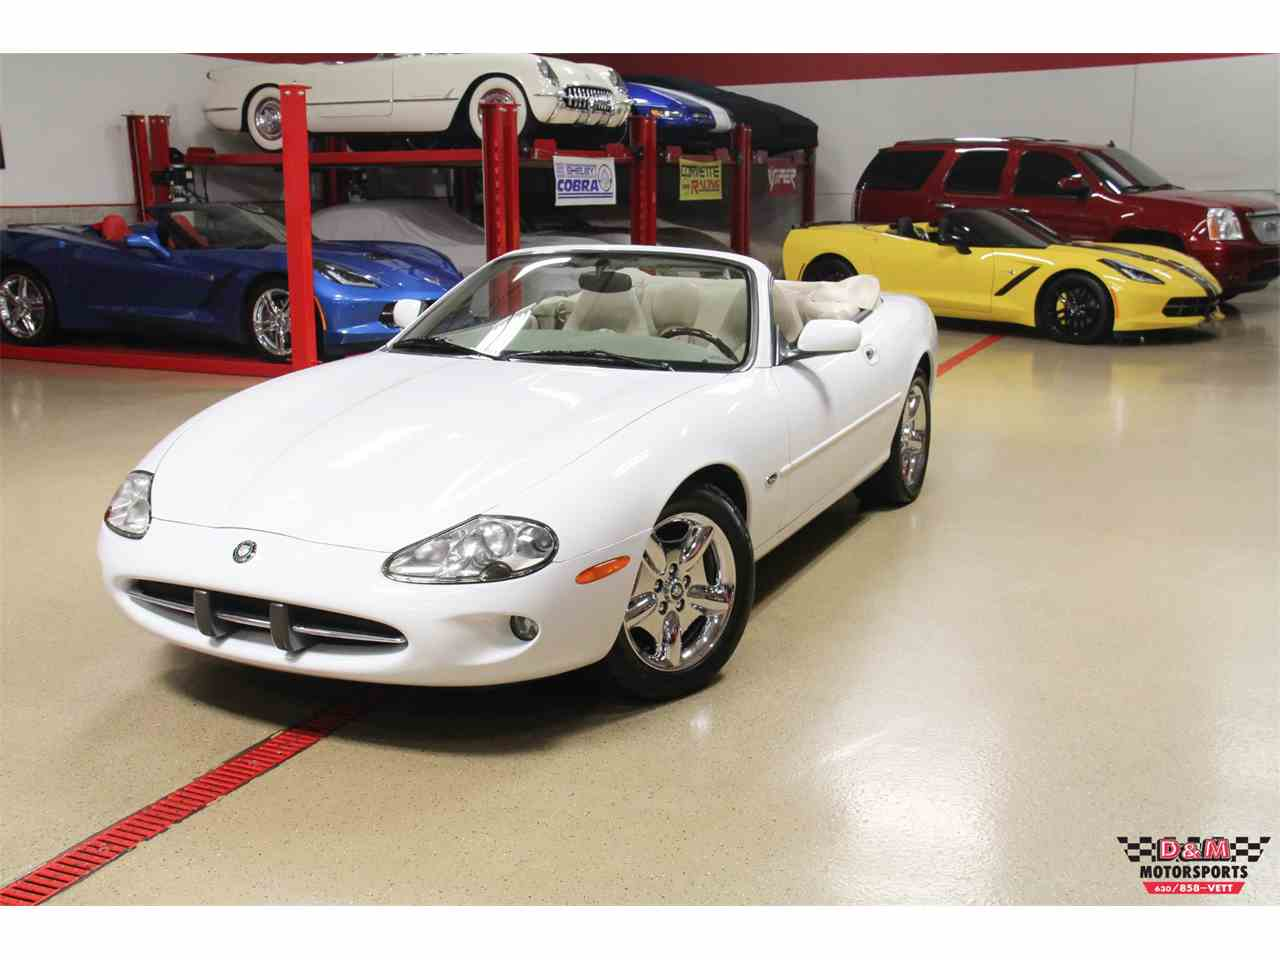 Large Picture of '98 Jaguar XK8 located in Glen Ellyn Illinois - $16,995.00 Offered by D & M Motorsports - MCA6